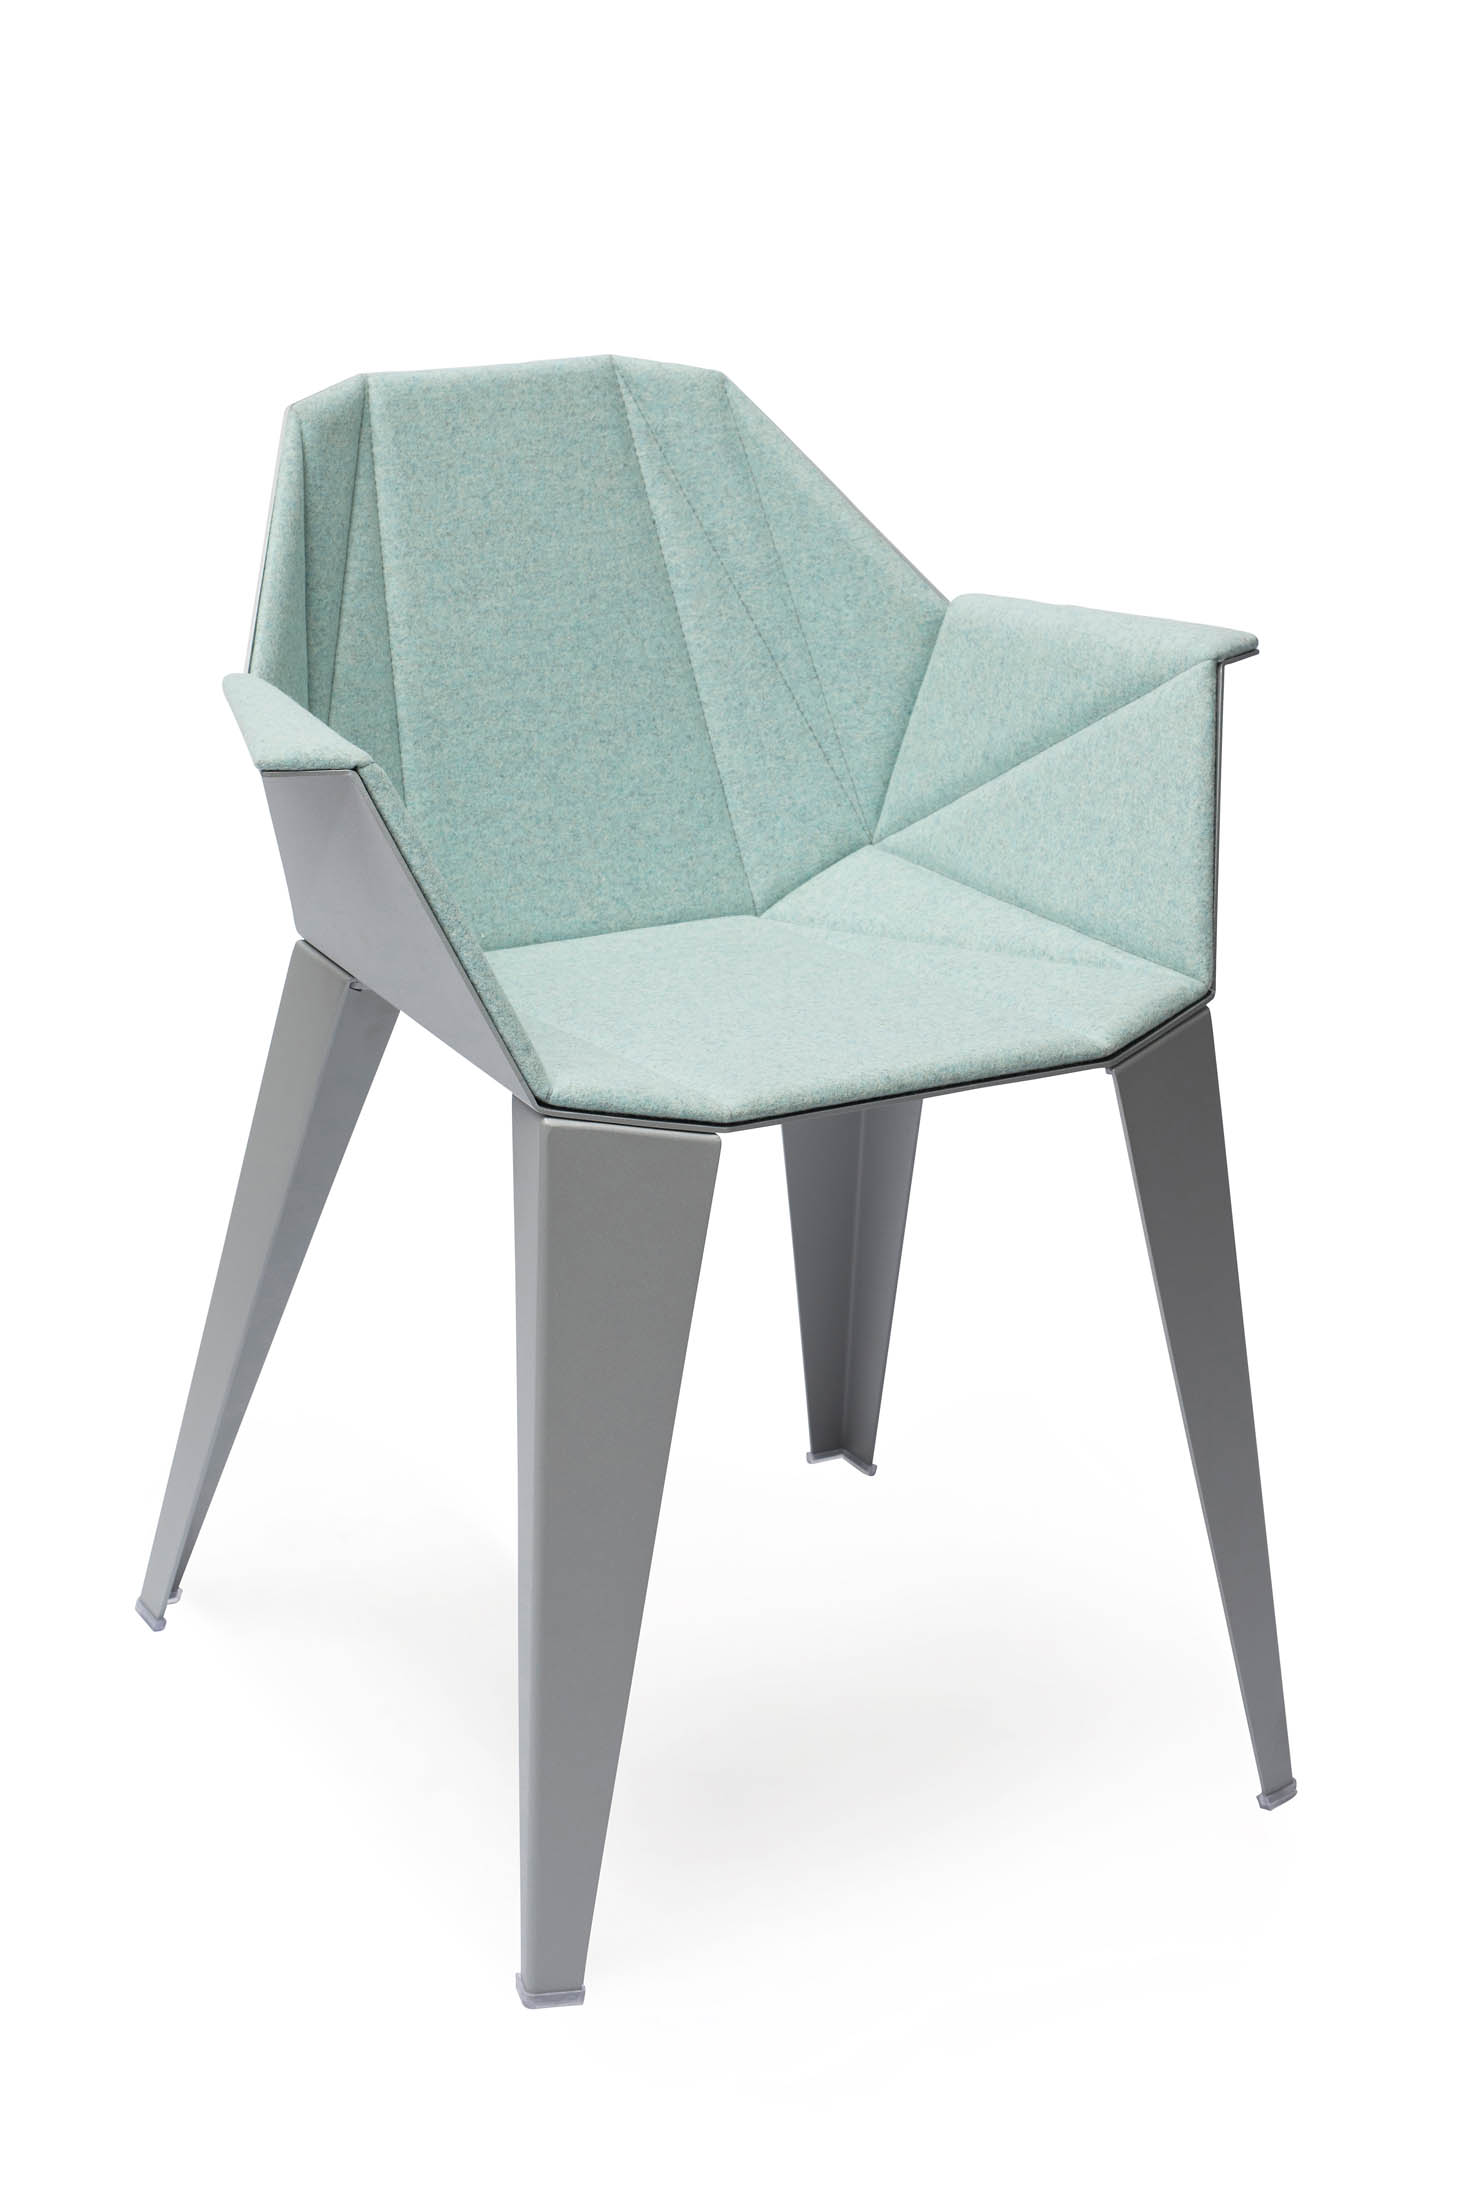 alumni-alpha-aluminum light-blue-upholstered-side-angle.jpg